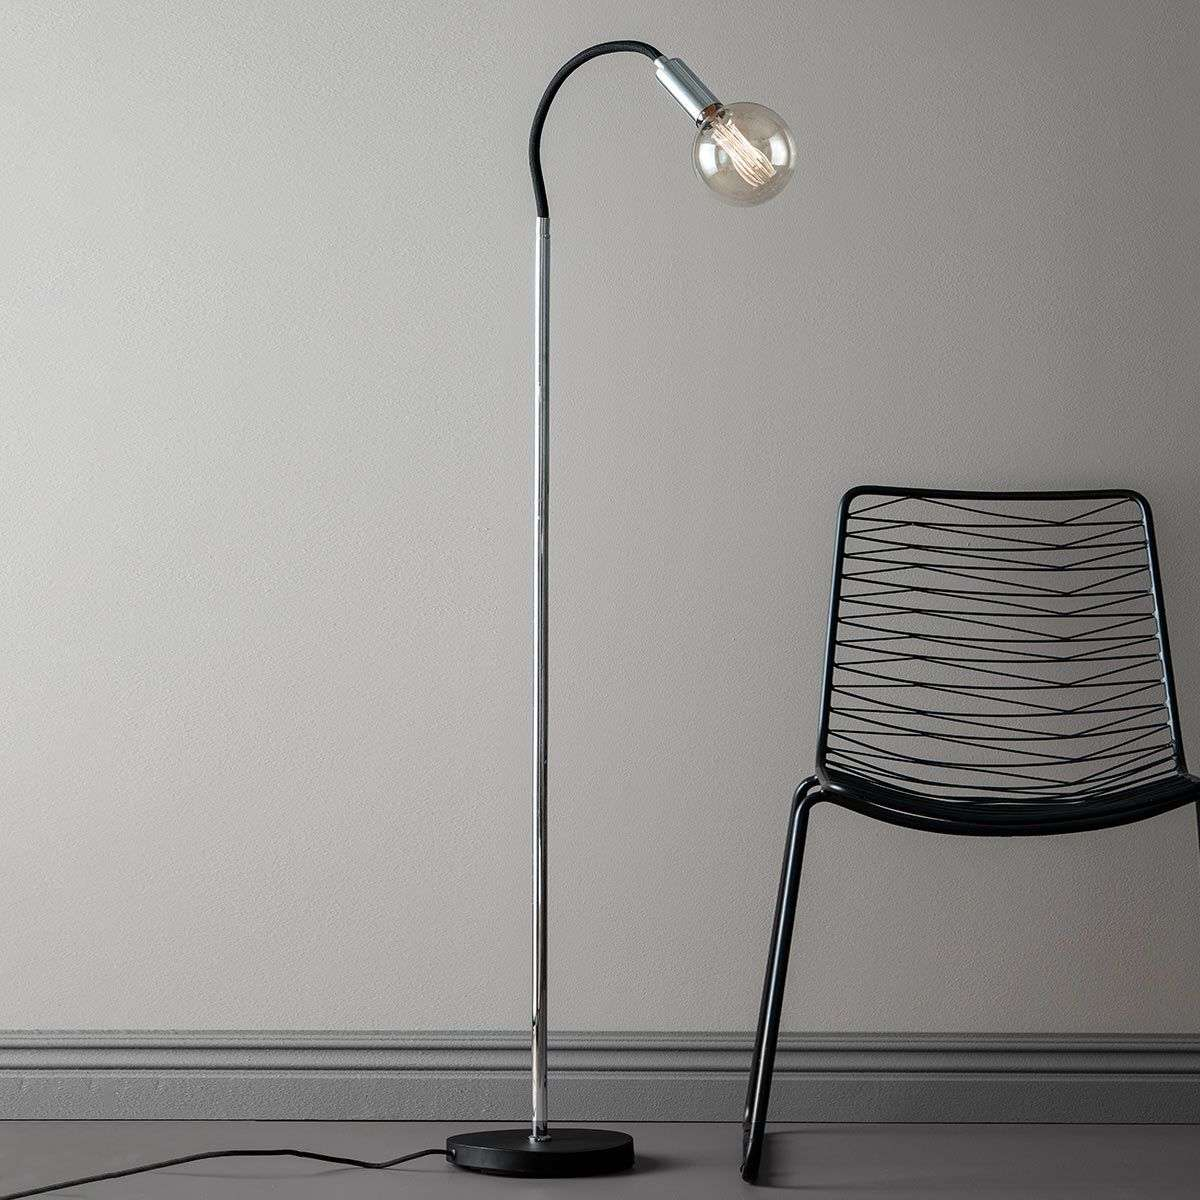 Floor lamp raw with a flexible neck lights floor lamp raw with a flexible neck 6505640 31 aloadofball Image collections